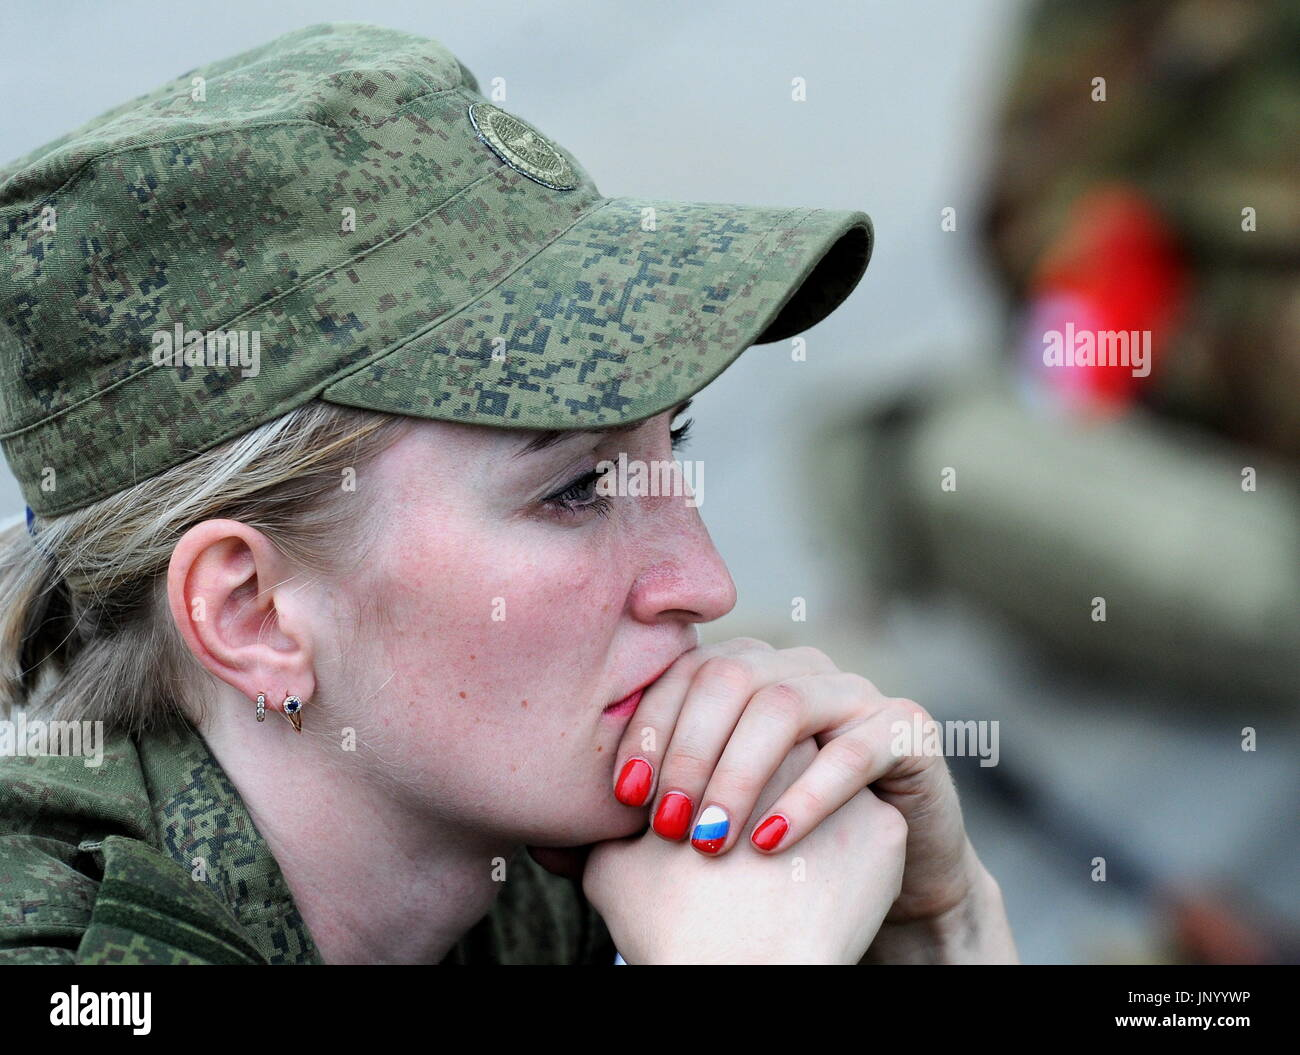 Minsk, Belarus. 31st July, 2017. A servicewoman participates in the Sniper marksmanship training contest as part of the Warrior of the Commonwealth stage of the 2017 International Army Games held by Russia's Defence Ministry. Credit: Viktor Drachev/TASS/Alamy Live News - Stock Image